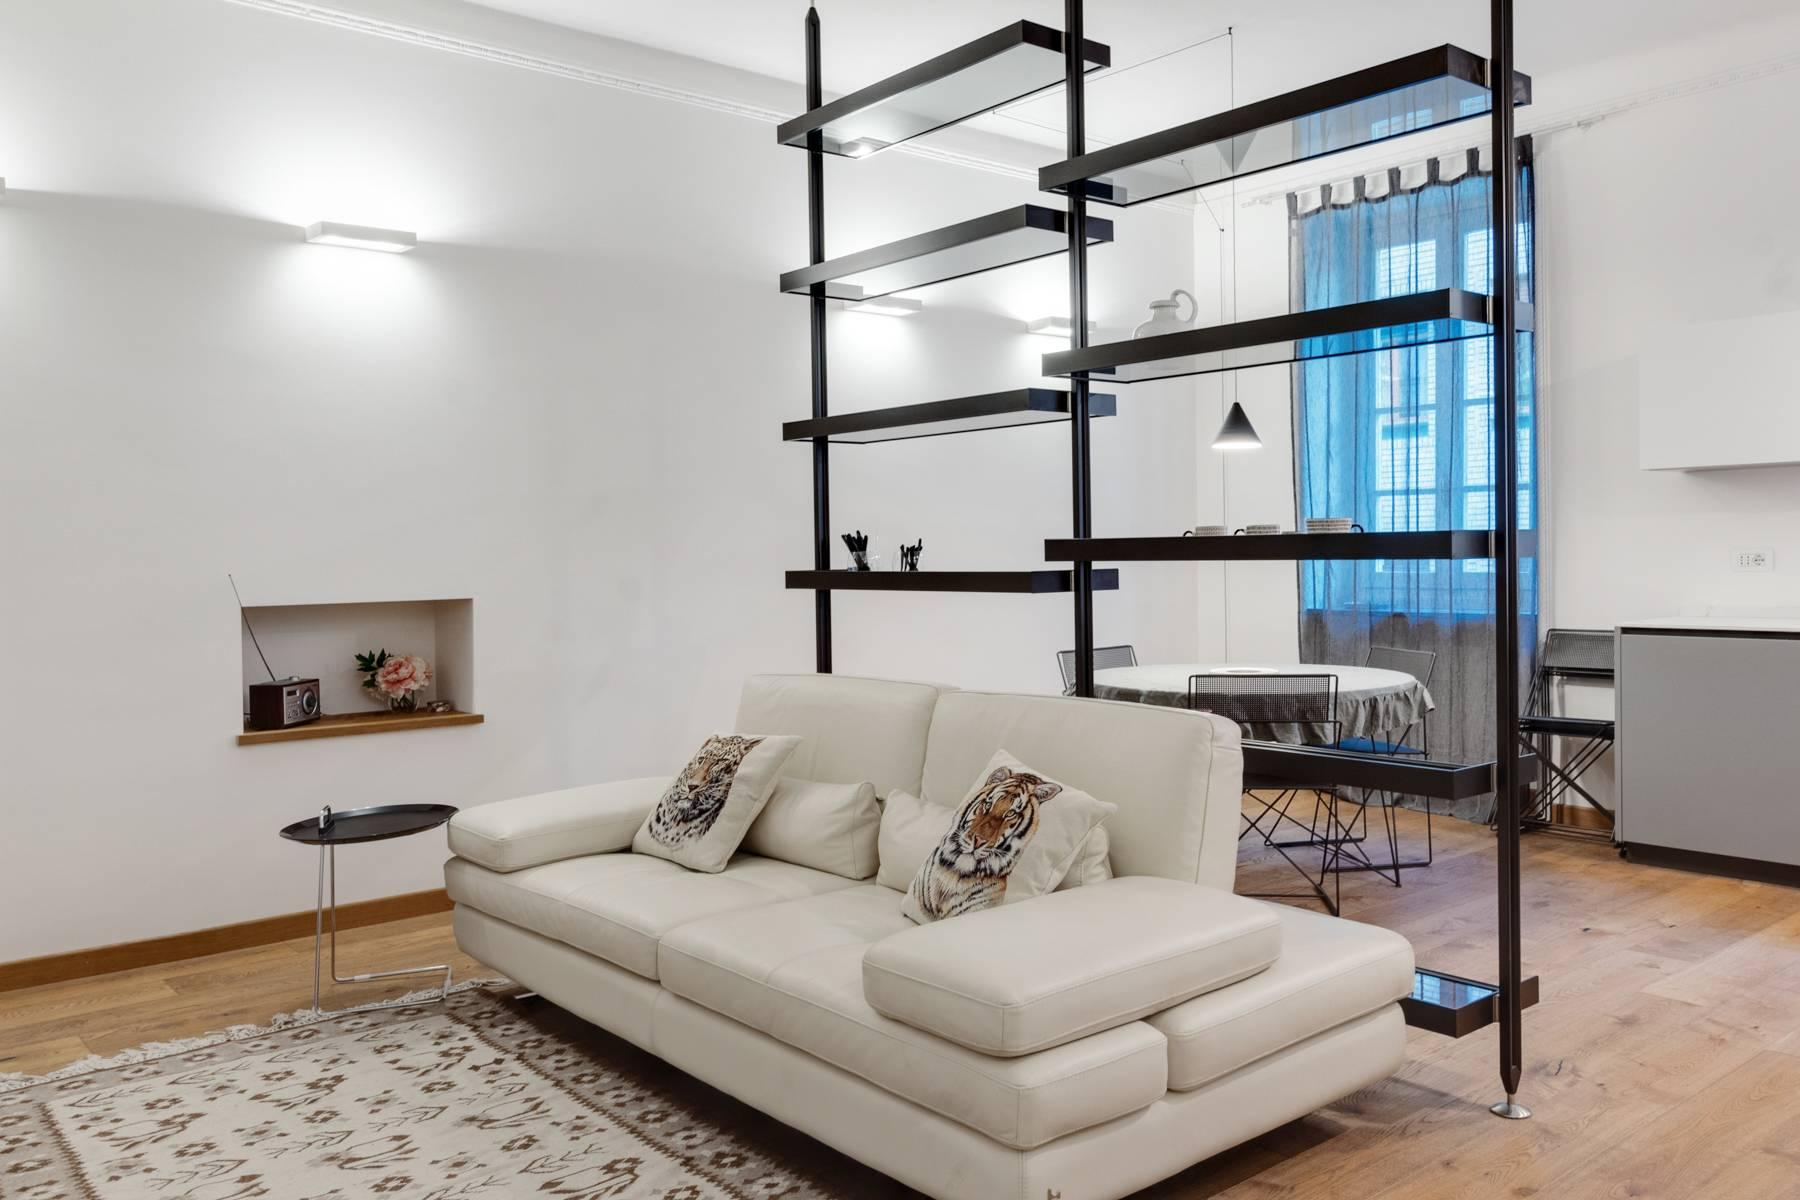 New apartment fully furnished in the center of Turin - 2